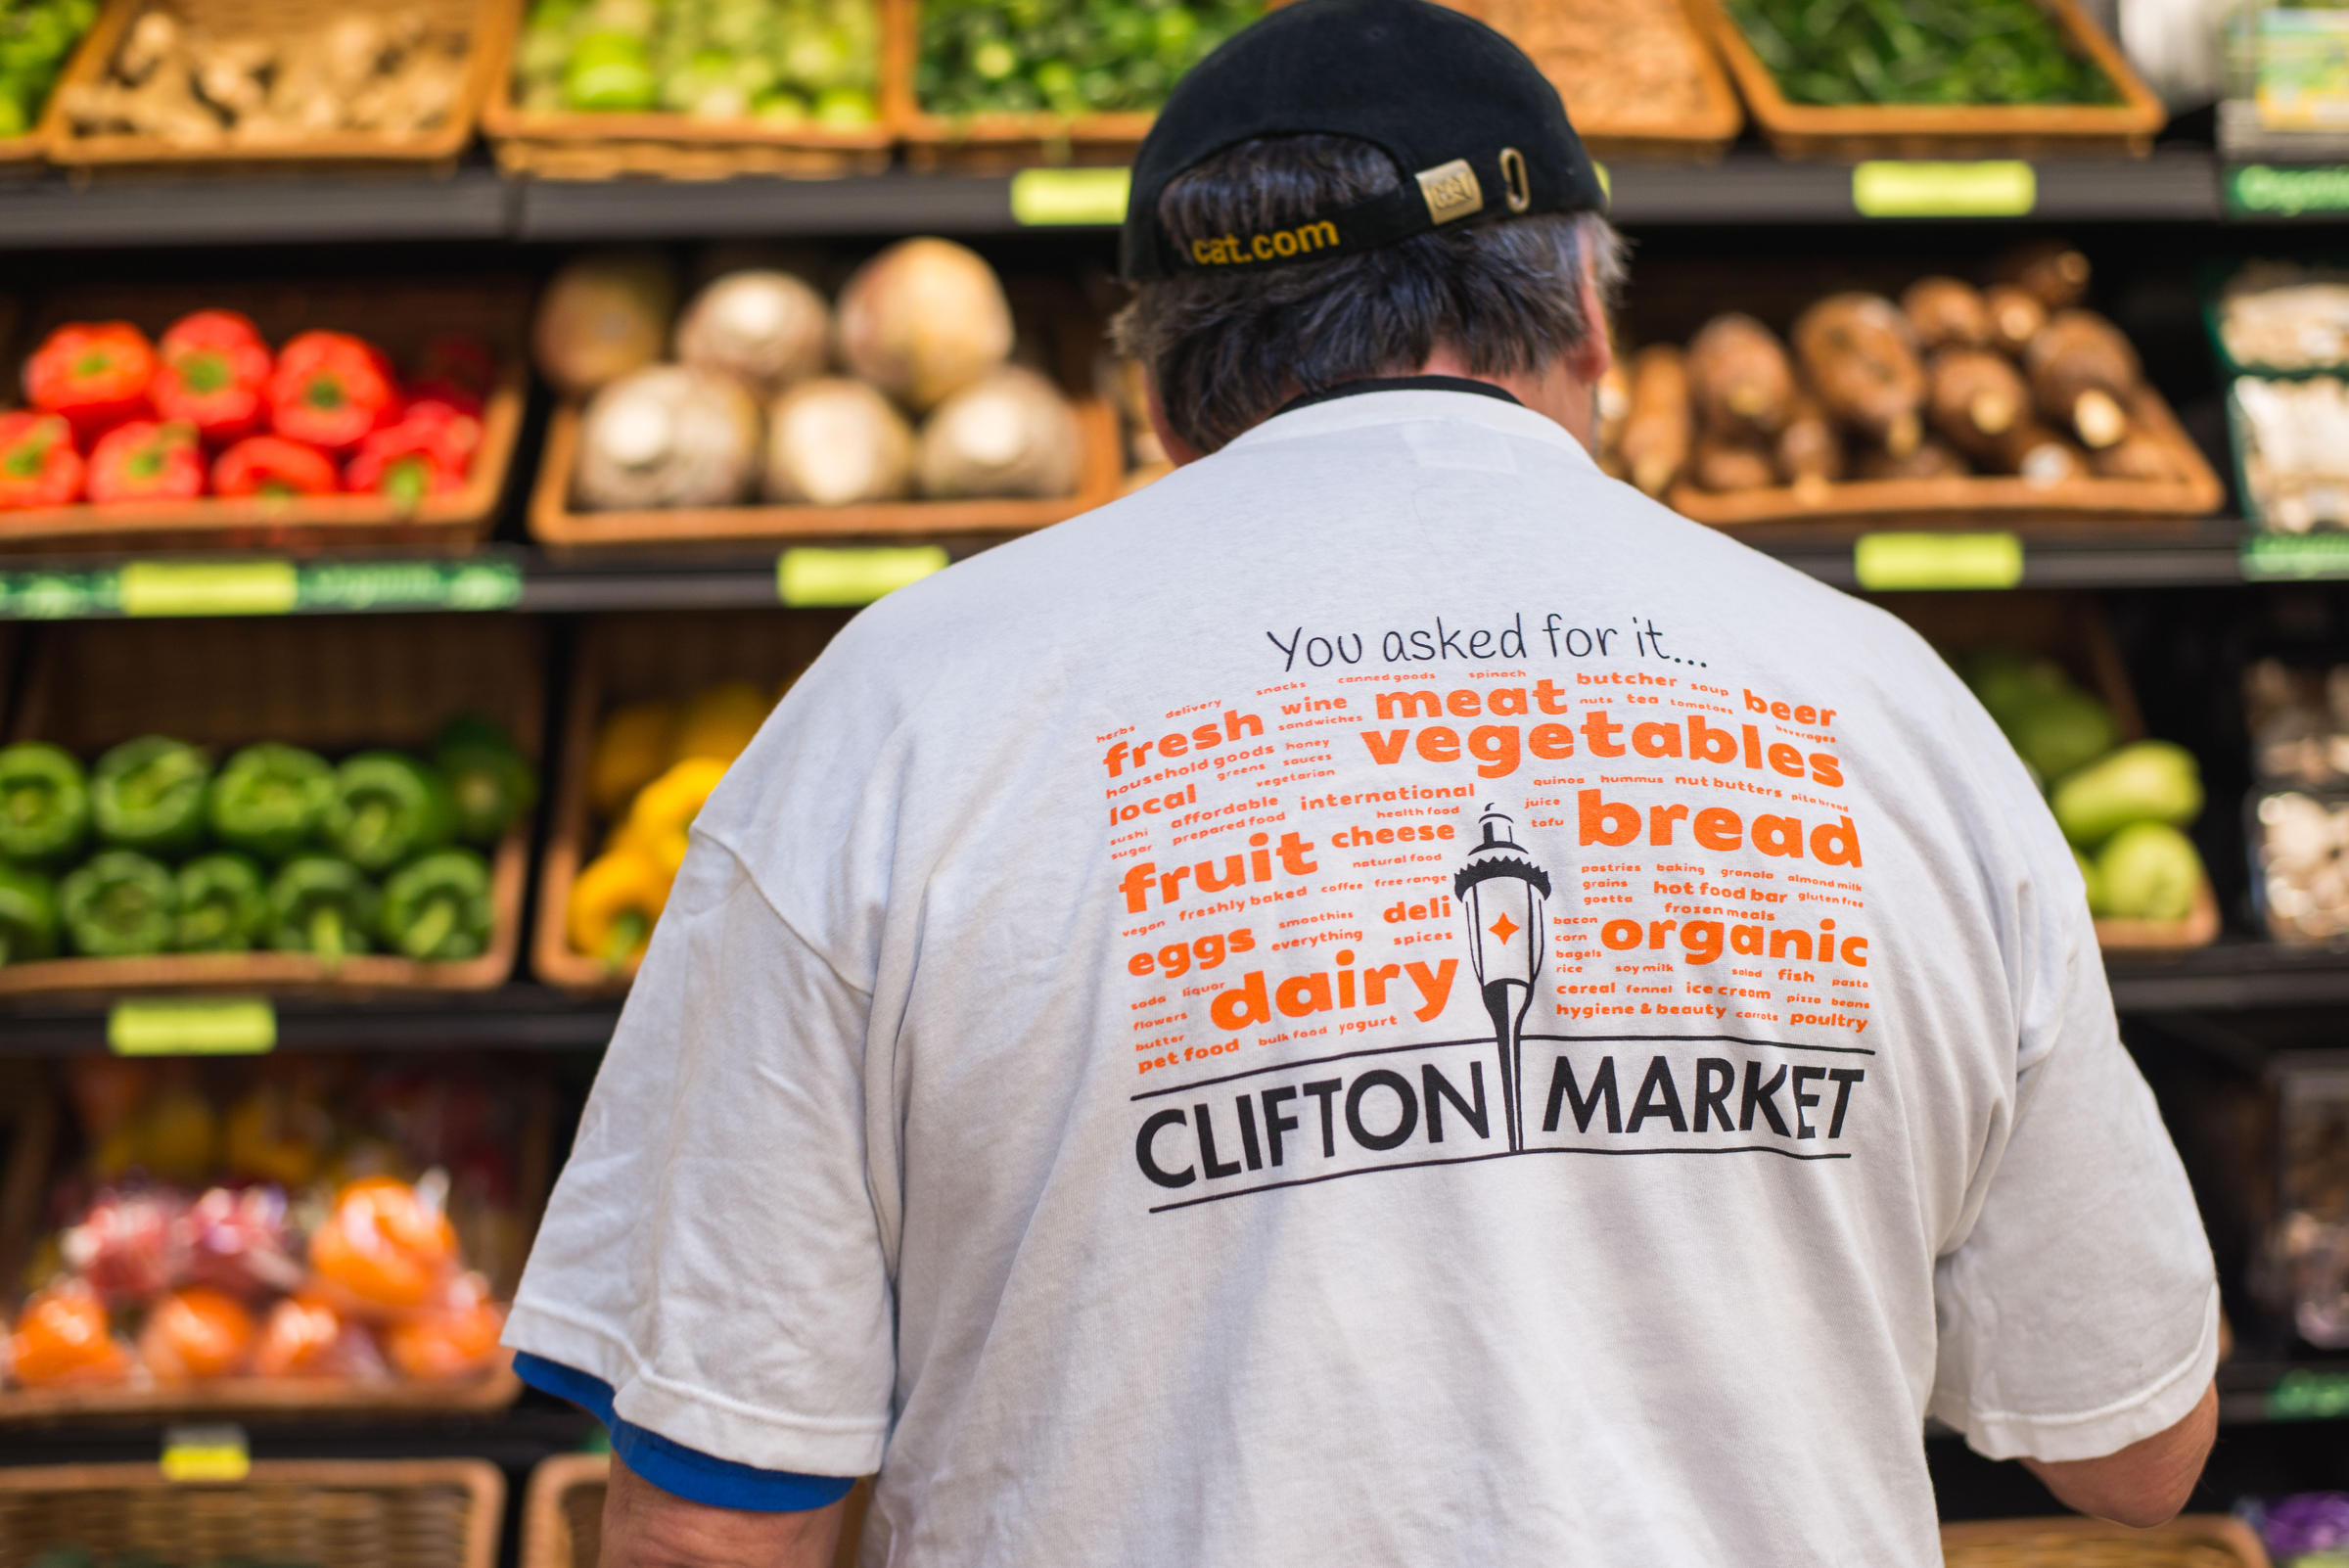 The Challenges Being Faced By The Clifton Market | WVXU